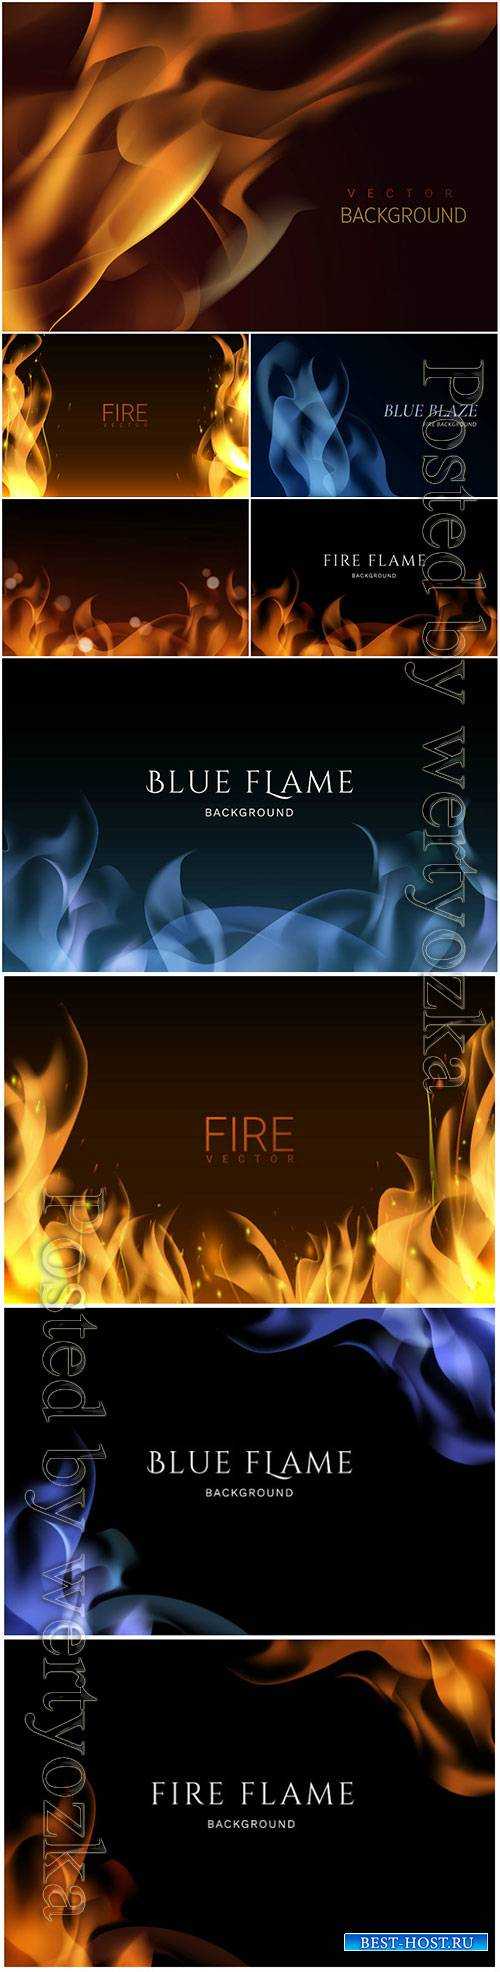 Burning flame vector background